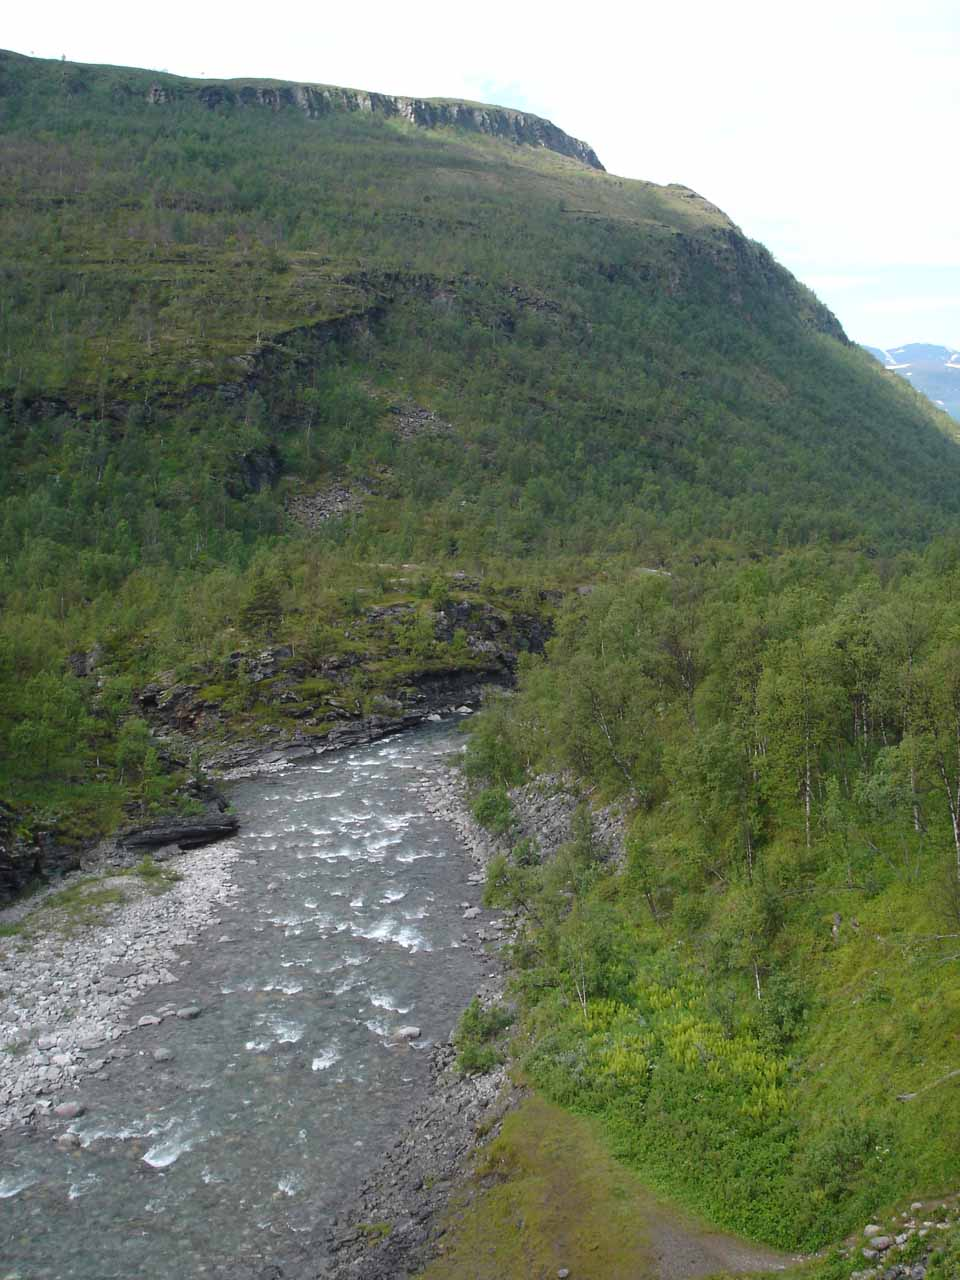 Looking downstream at Skibotnelva and the broad Skibotndalen Valley from the E8